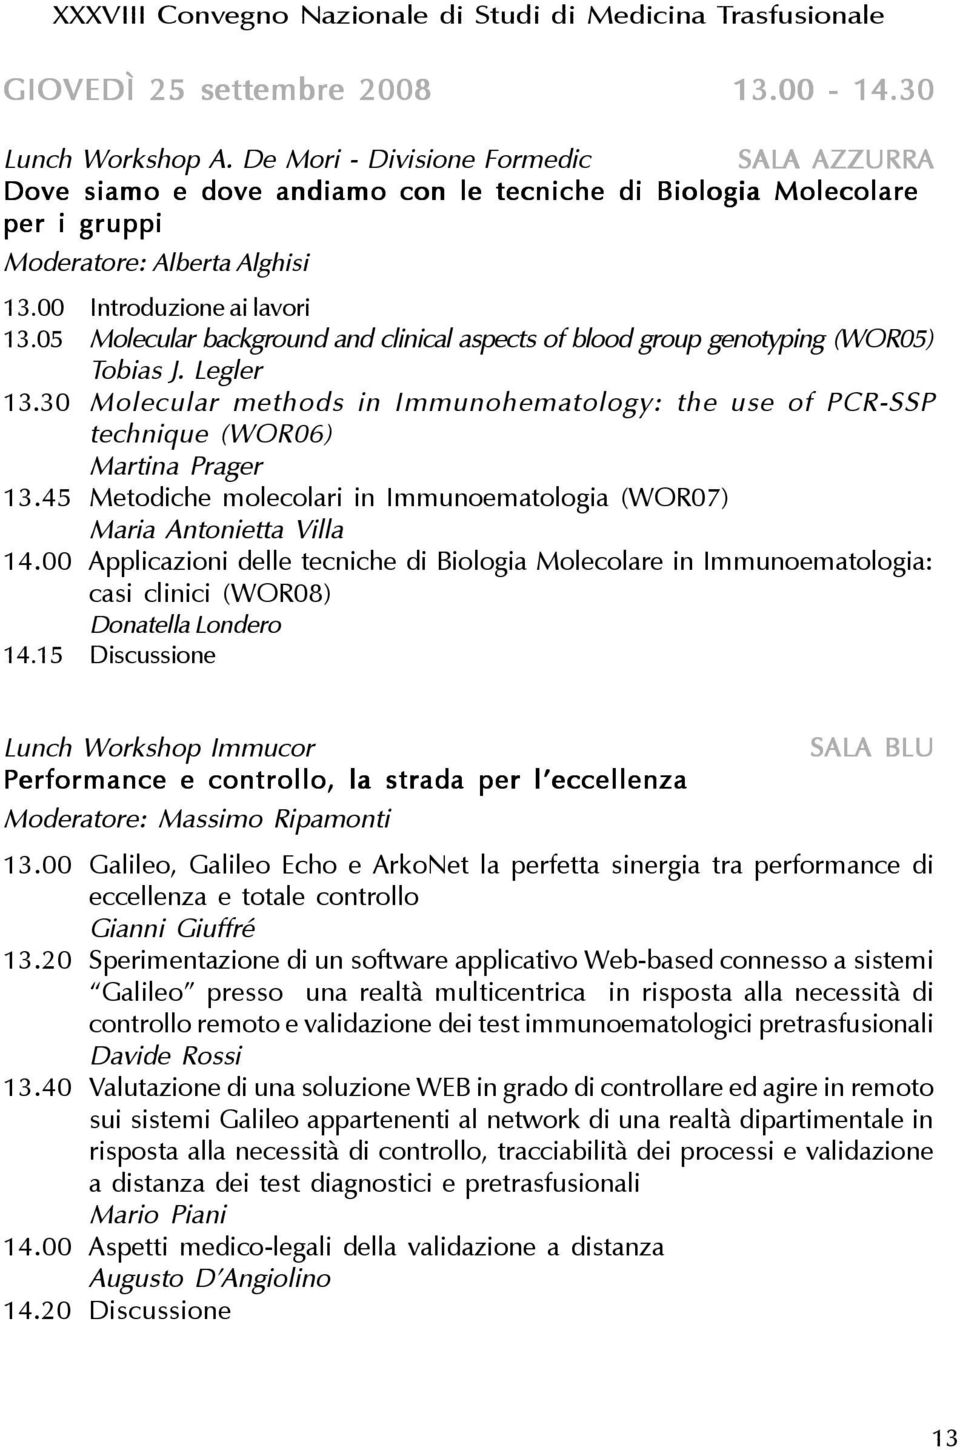 05 Molecular background and clinical aspects of blood group genotyping (WOR05) Tobias J. Legler 13.30 Molecular methods in Immunohematology: the use of PCR-SSP technique (WOR06) Martina Prager 13.